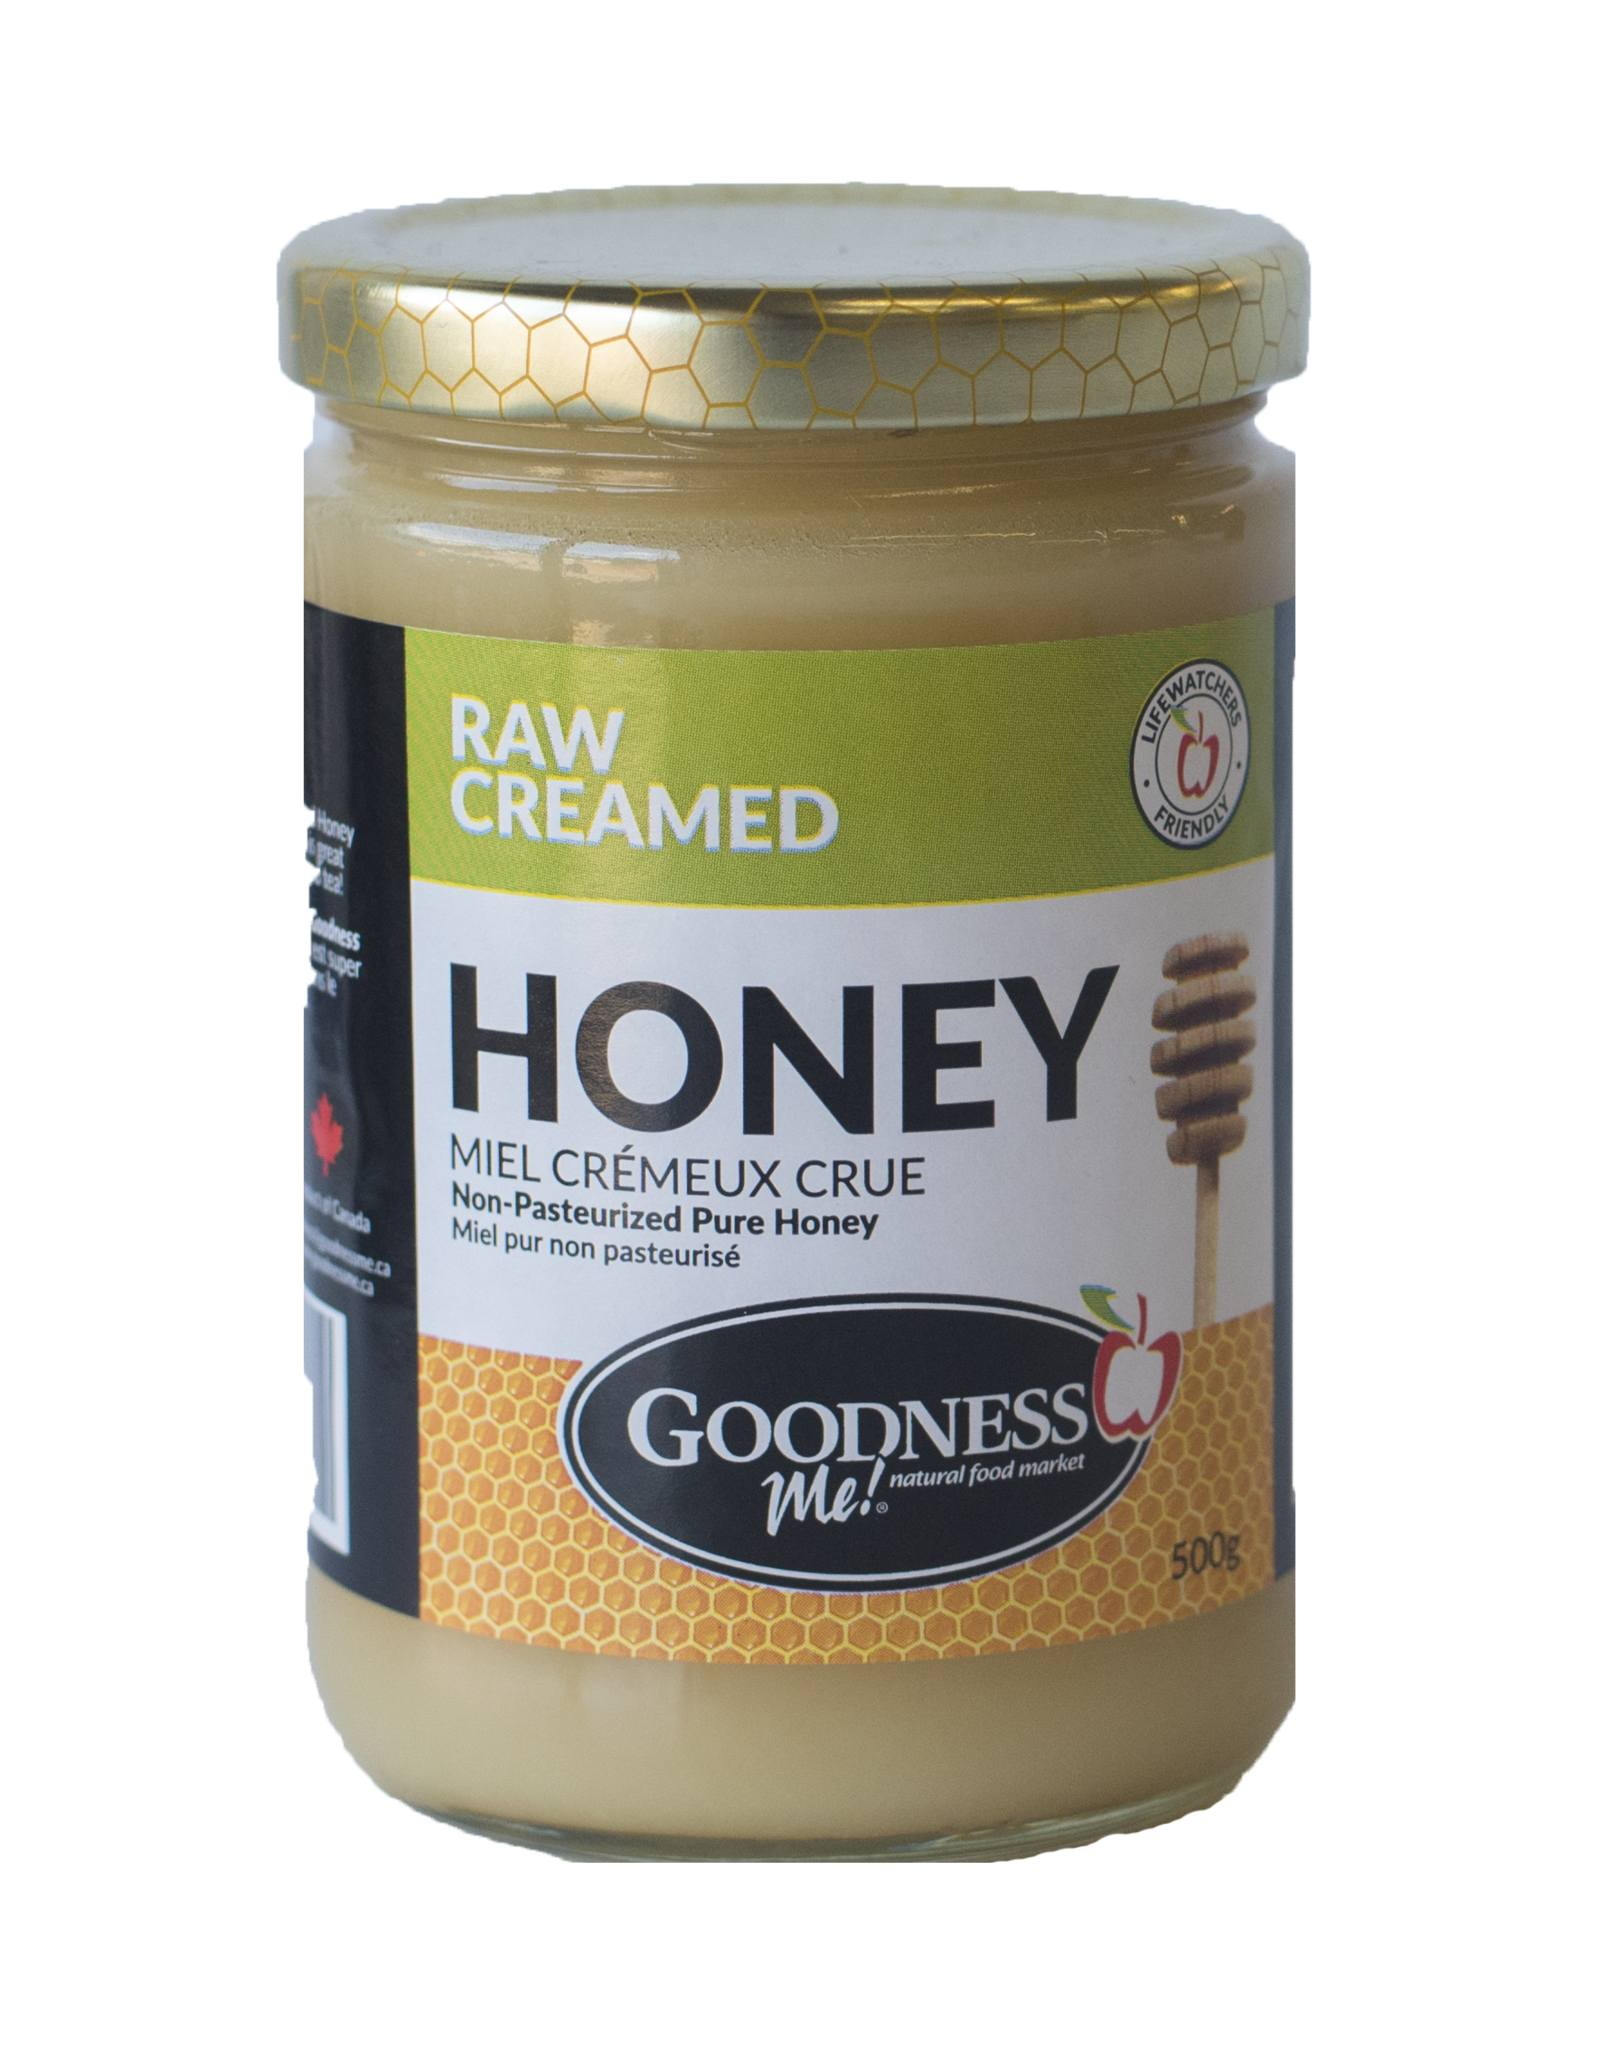 Food & Drink - Goodness Me! - Raw Honey, 500g